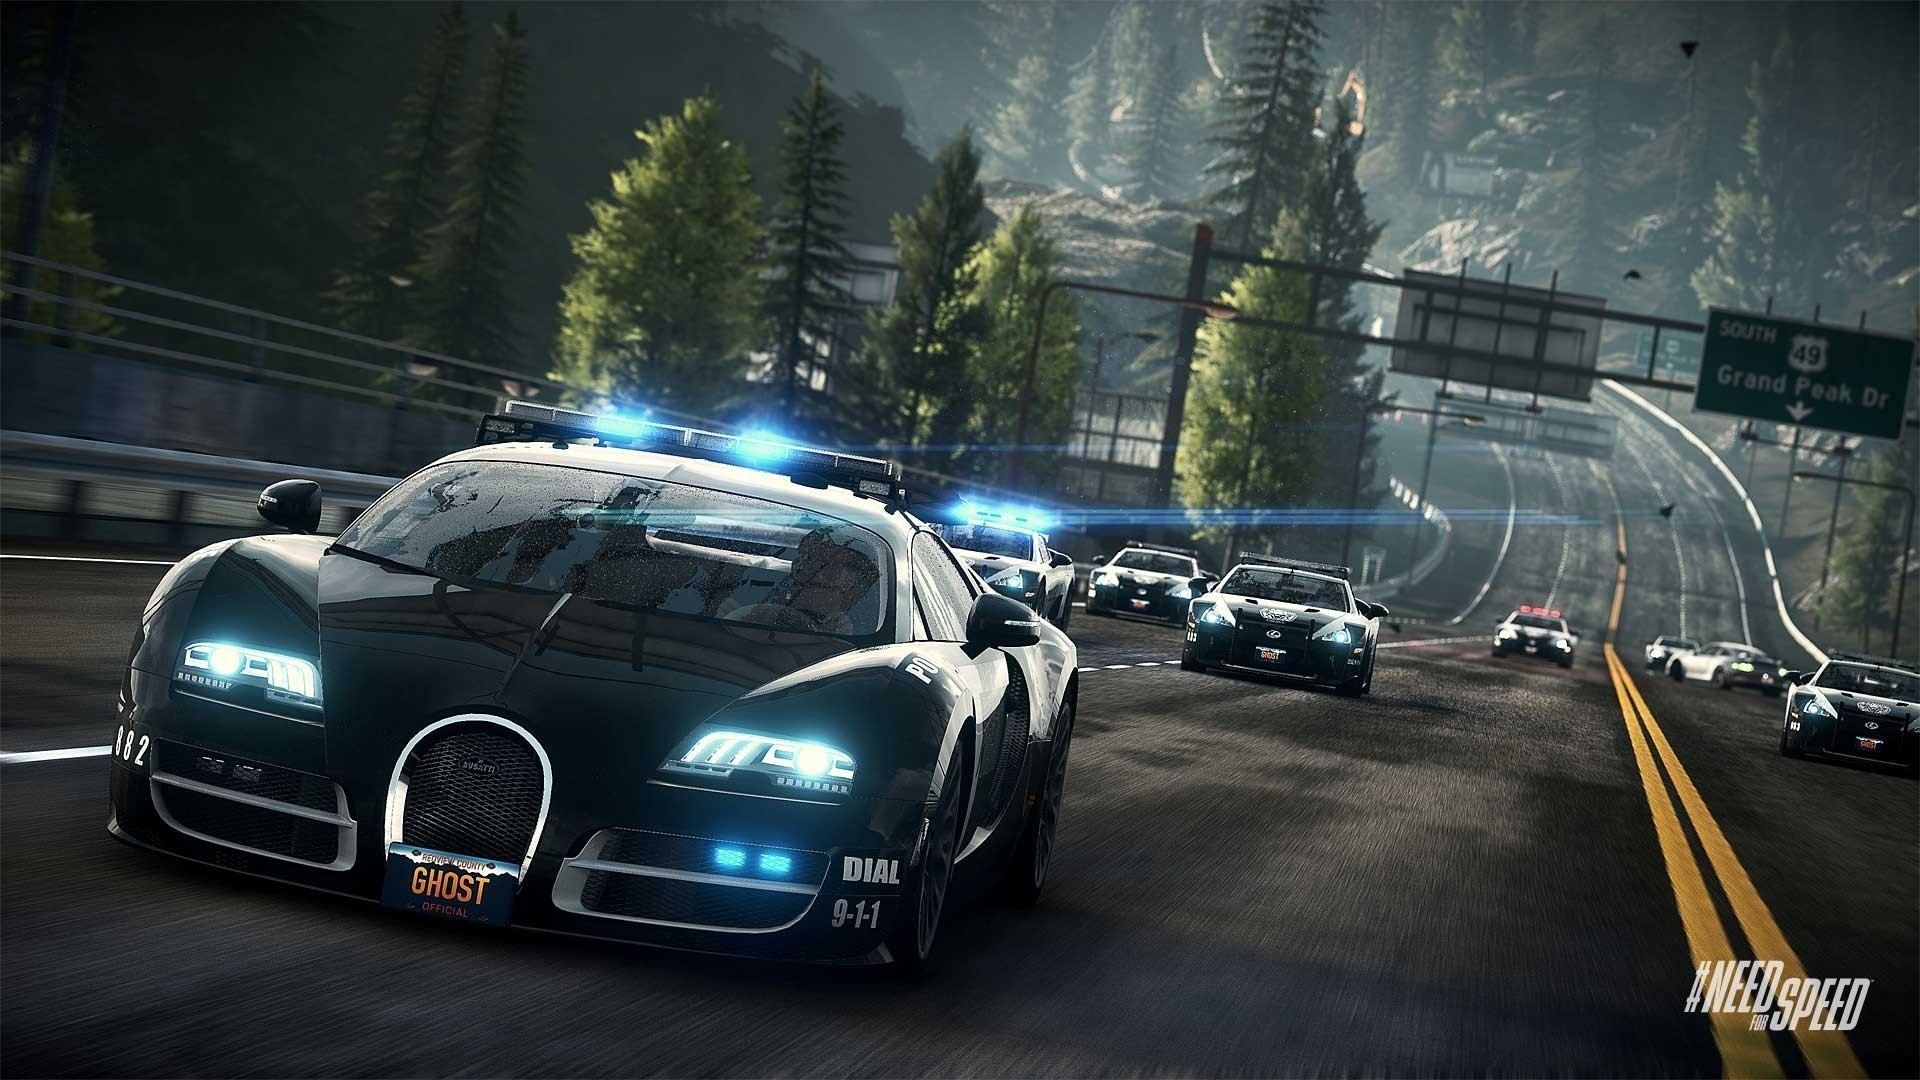 1920x1080 Police Car Wallpapers High Quality